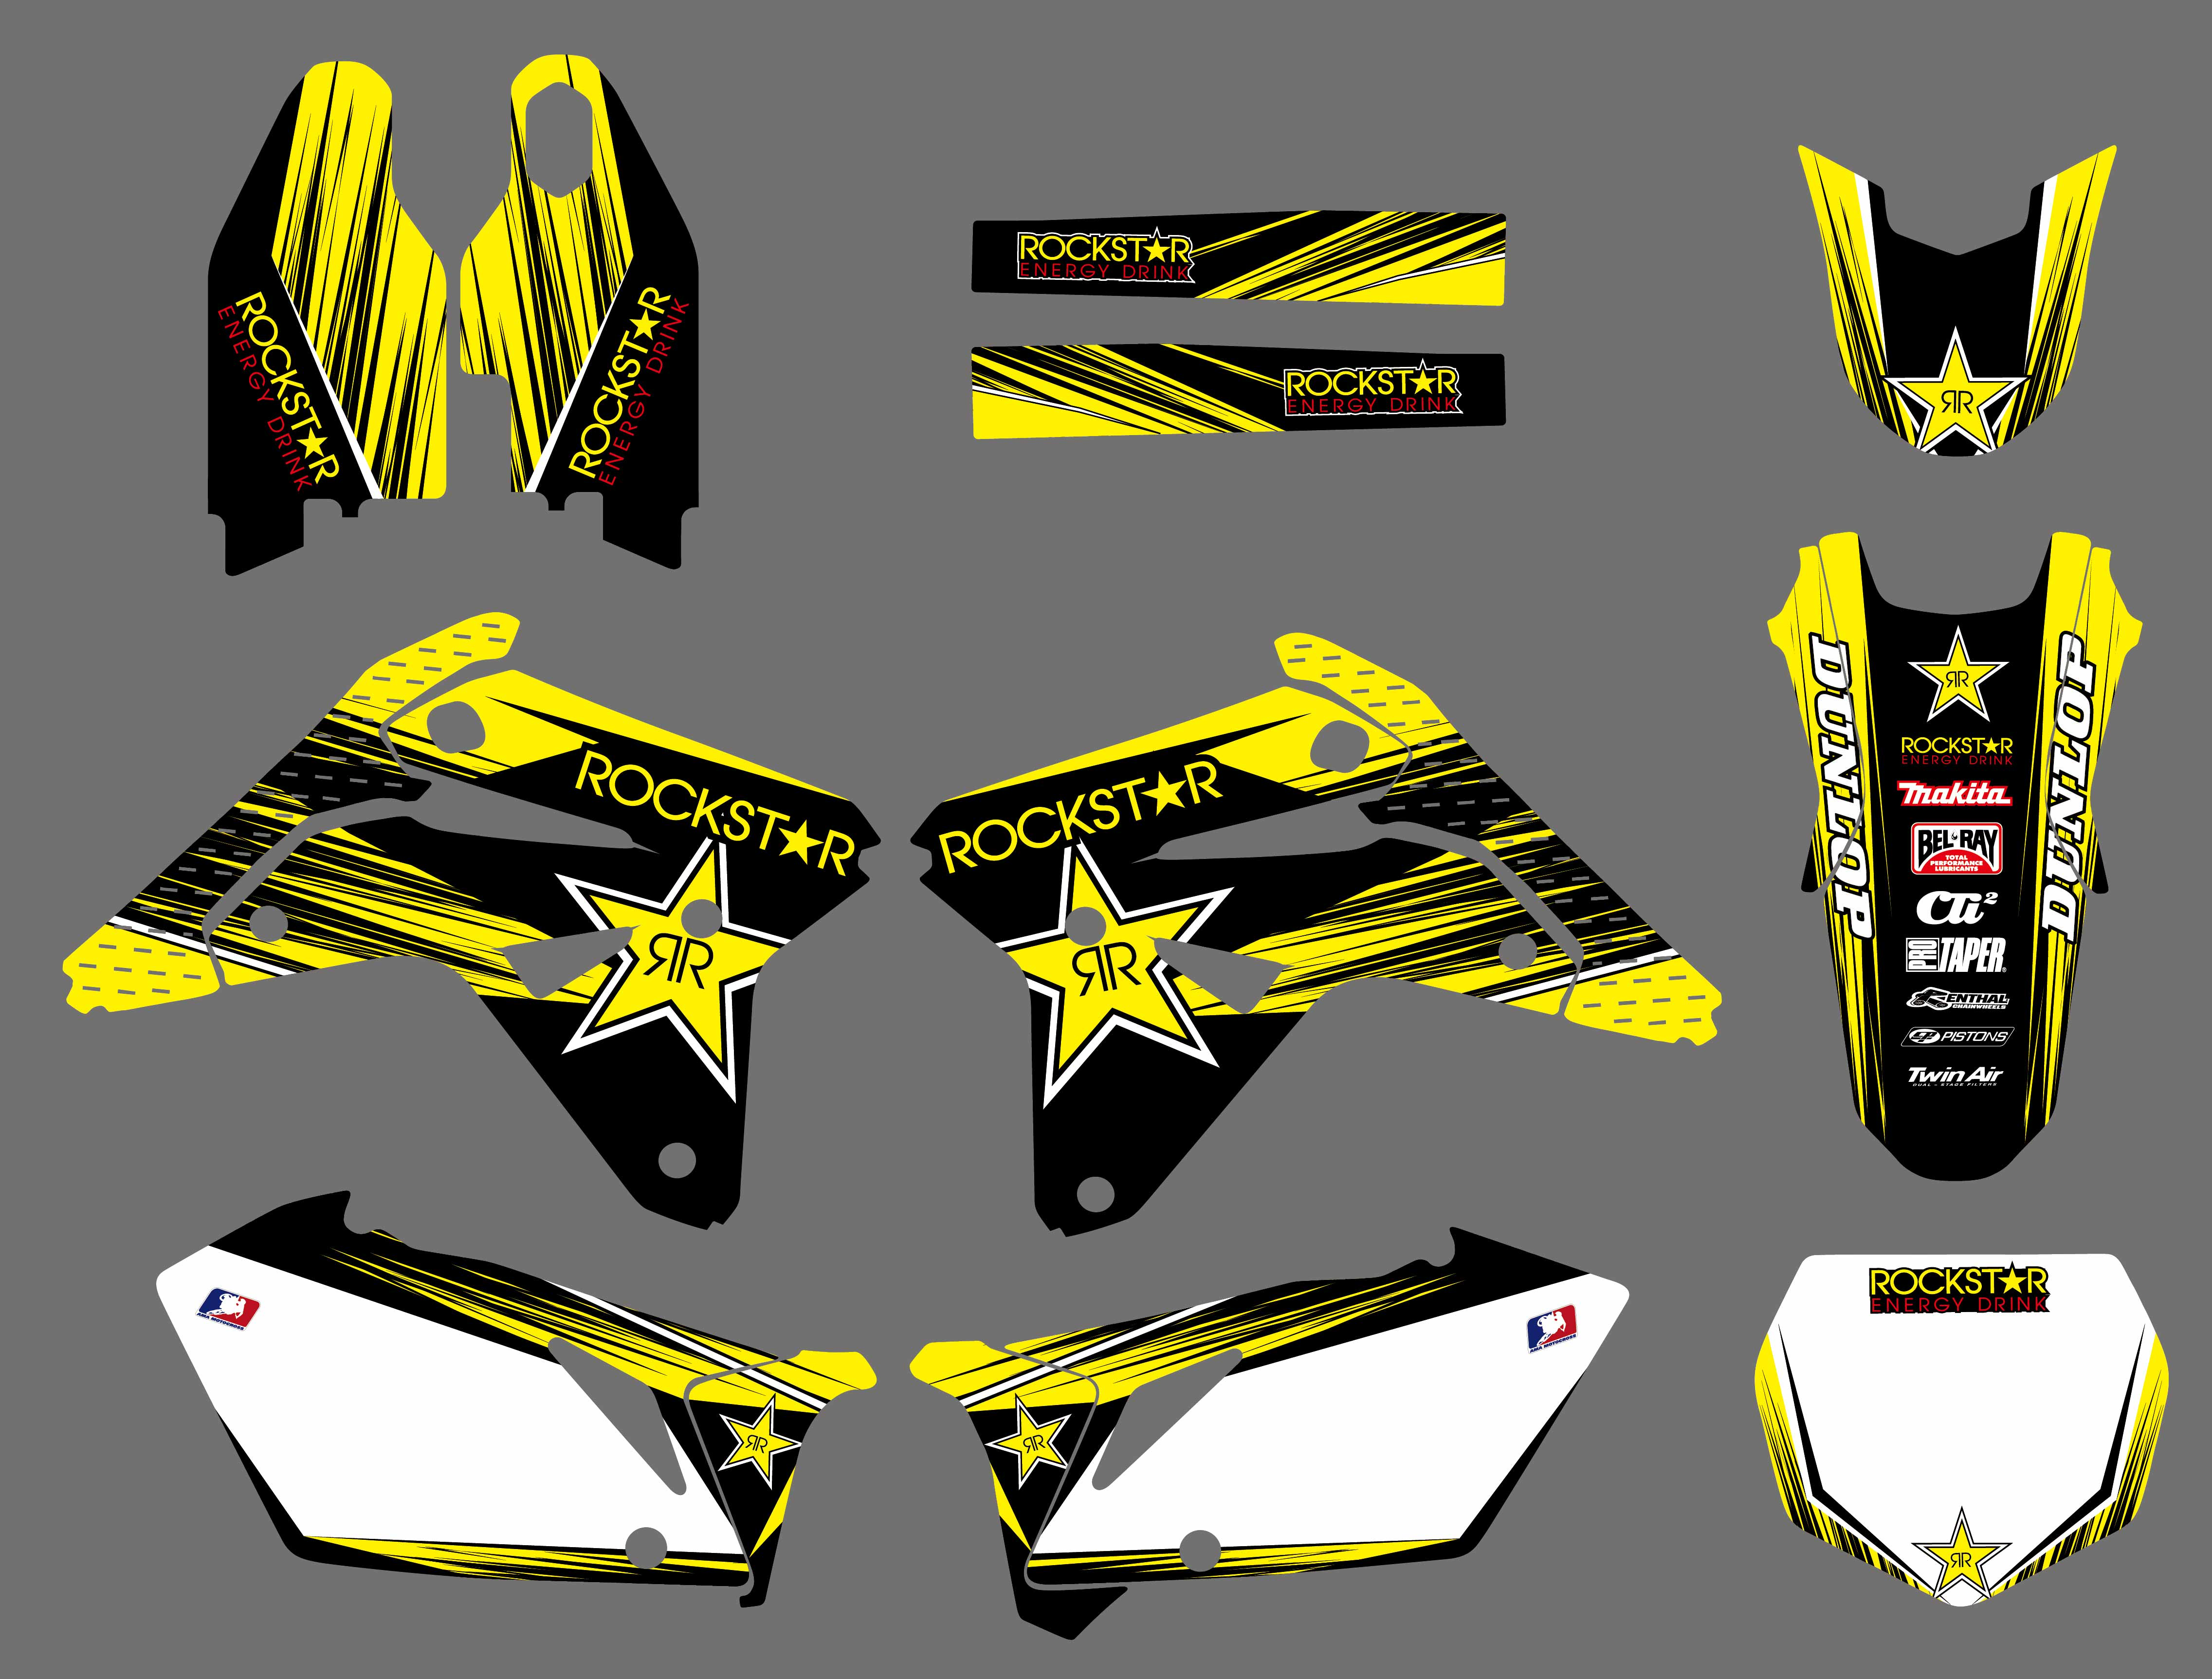 NICECNC Motorcycle New Team Graphic Background Decals And Stickers For Suzuki RM-Z450 RMZ450 RM-Z RMZ 450 2007 Yellow Black bikingboy front 13t rear 48t 49t 50t 51t 52t sprockets 520 chain for suzuki rmz 450 rmz450 2005 2016 rm z 450 05 16 full set